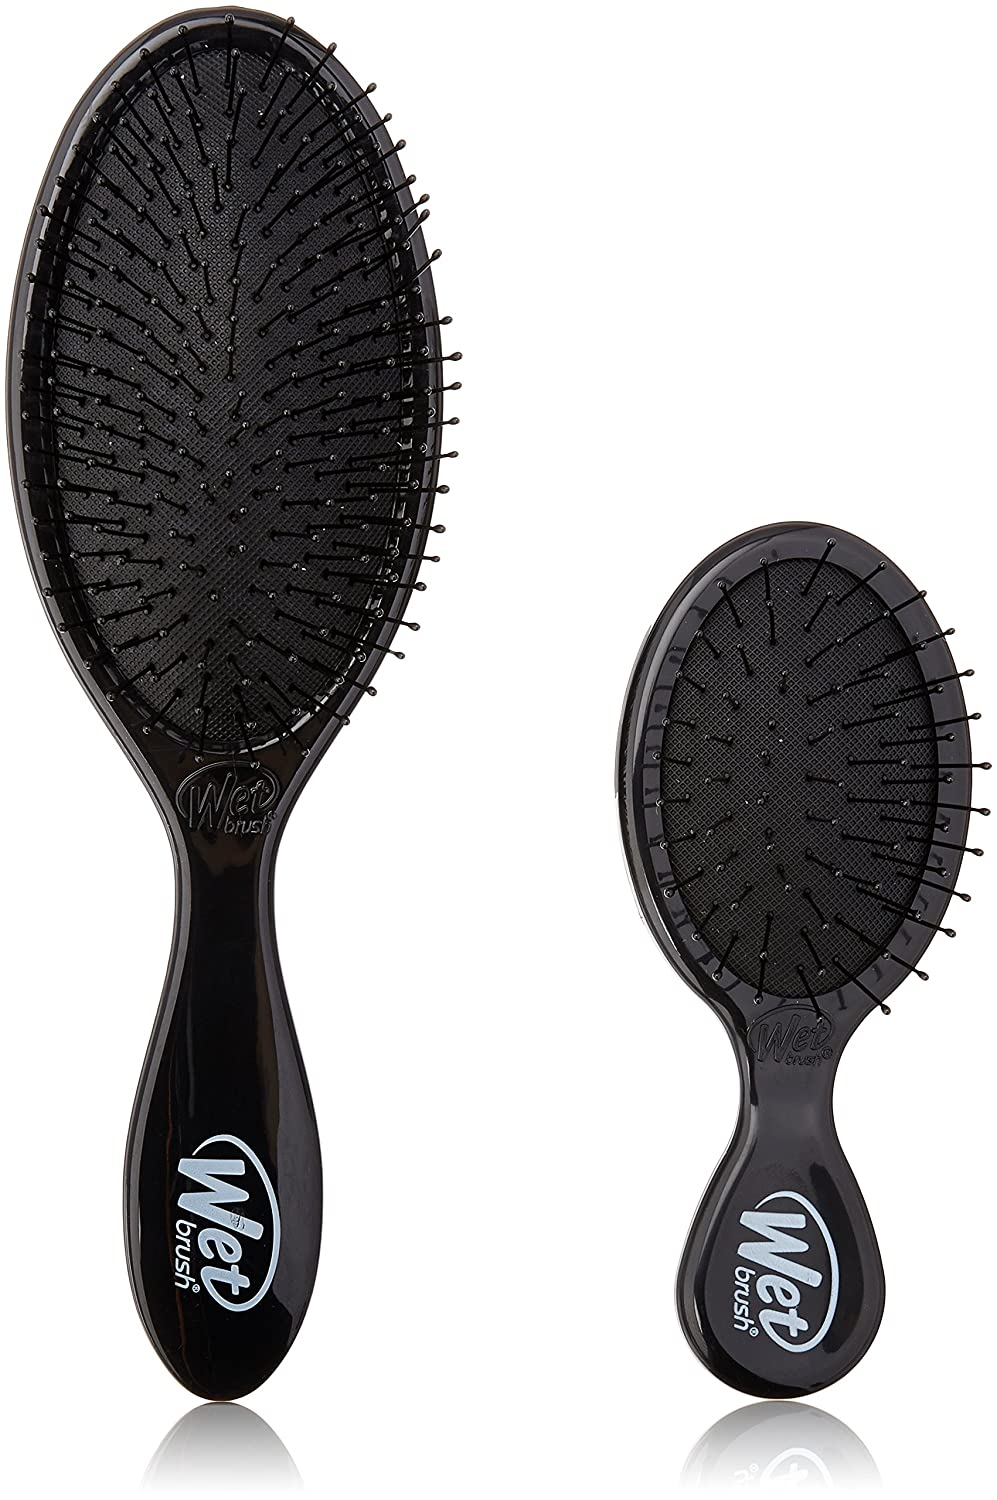 Amazon.com : The Wet Brush Standard & Squirt Combo, Black : Hair Brushes : Beauty